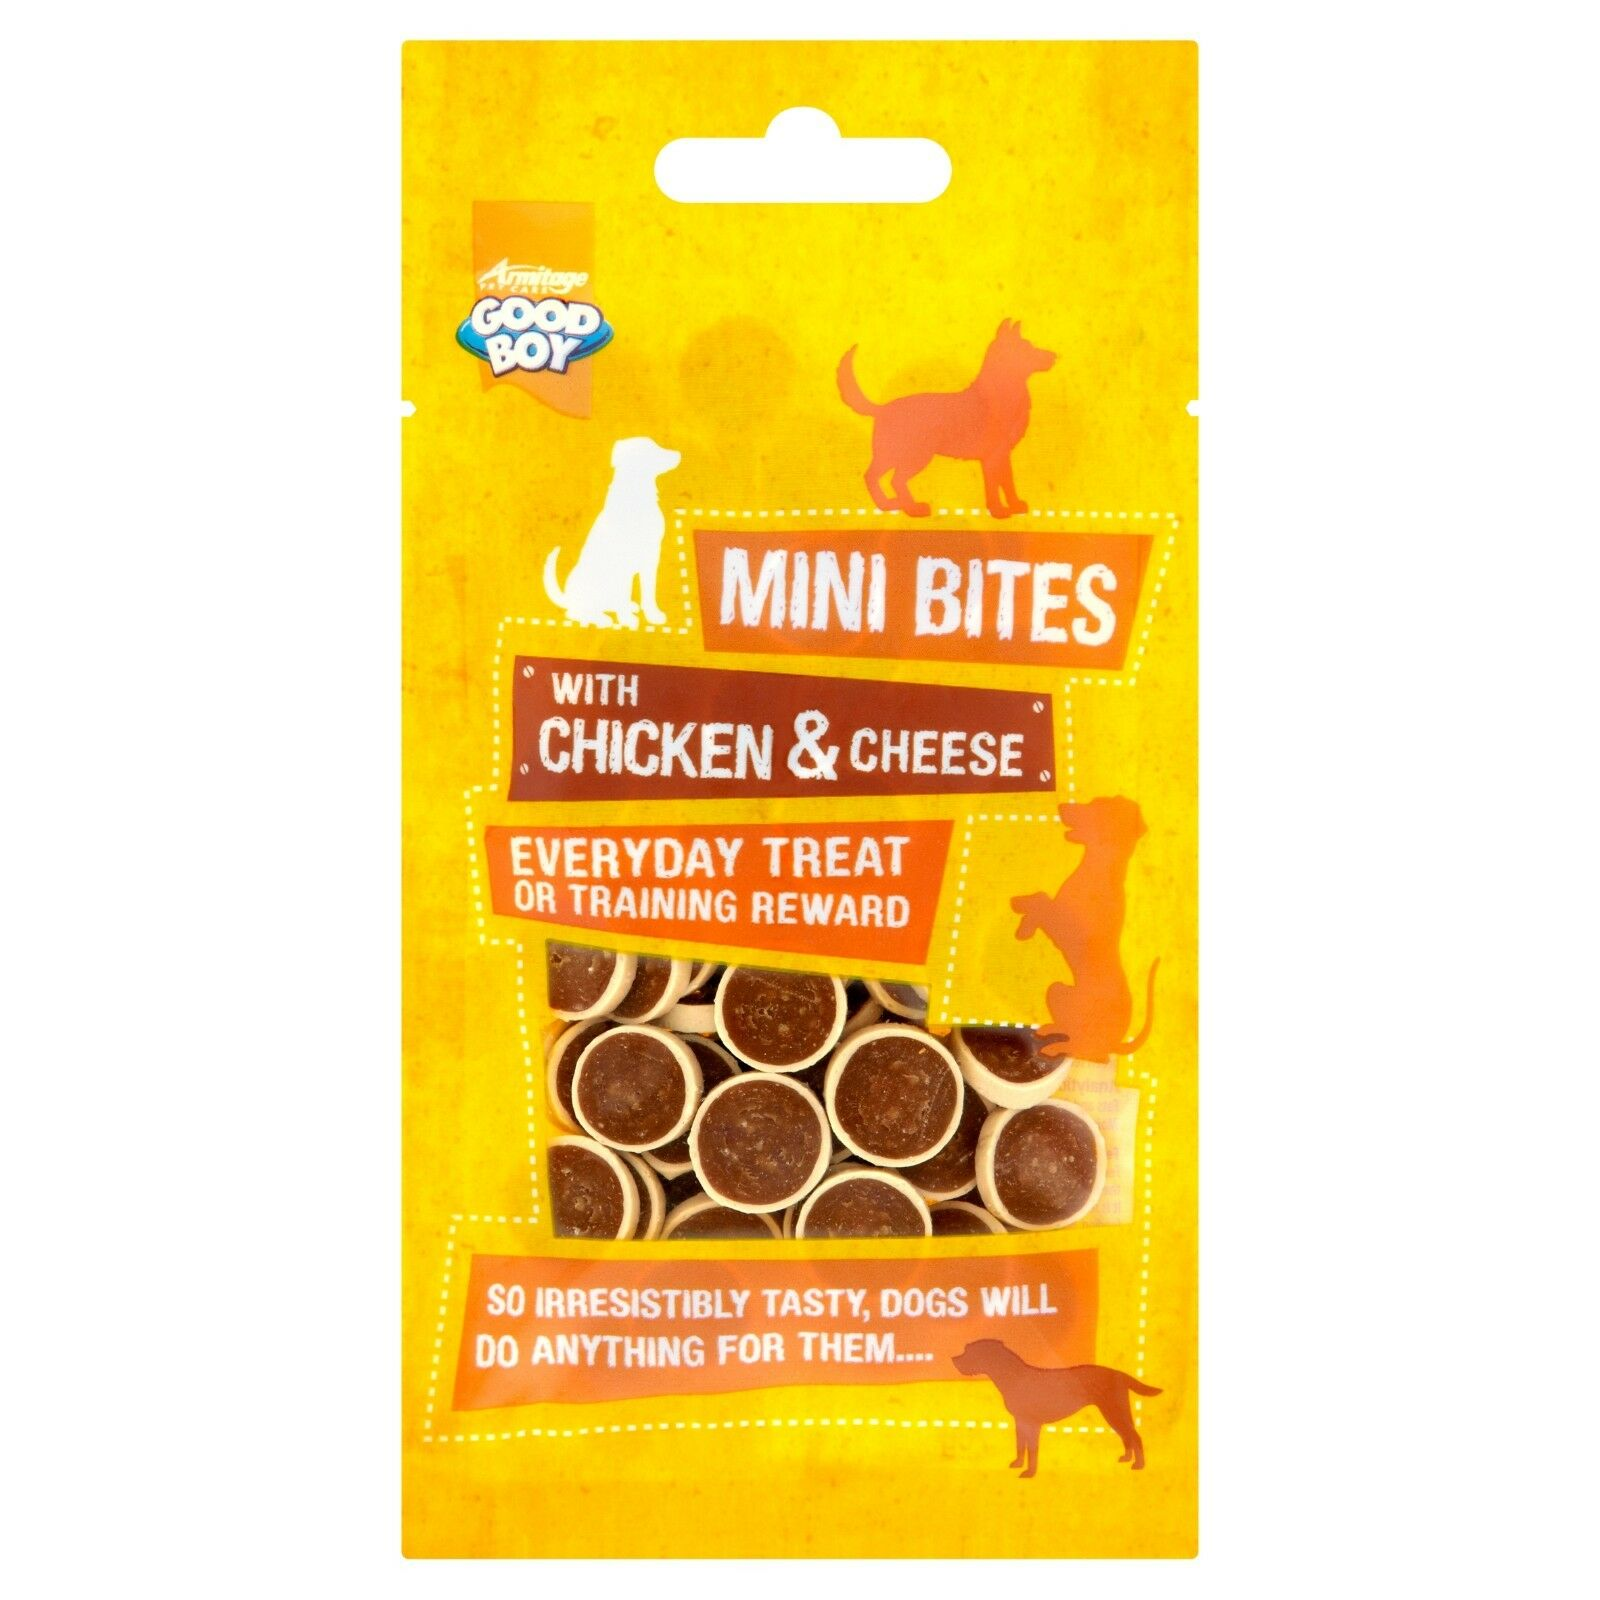 GOOD Boy pawsley pawsley pawsley & Co Carne di Pollo Anatra Tasty per Cani in salute naturale tratta le gomme e245bf